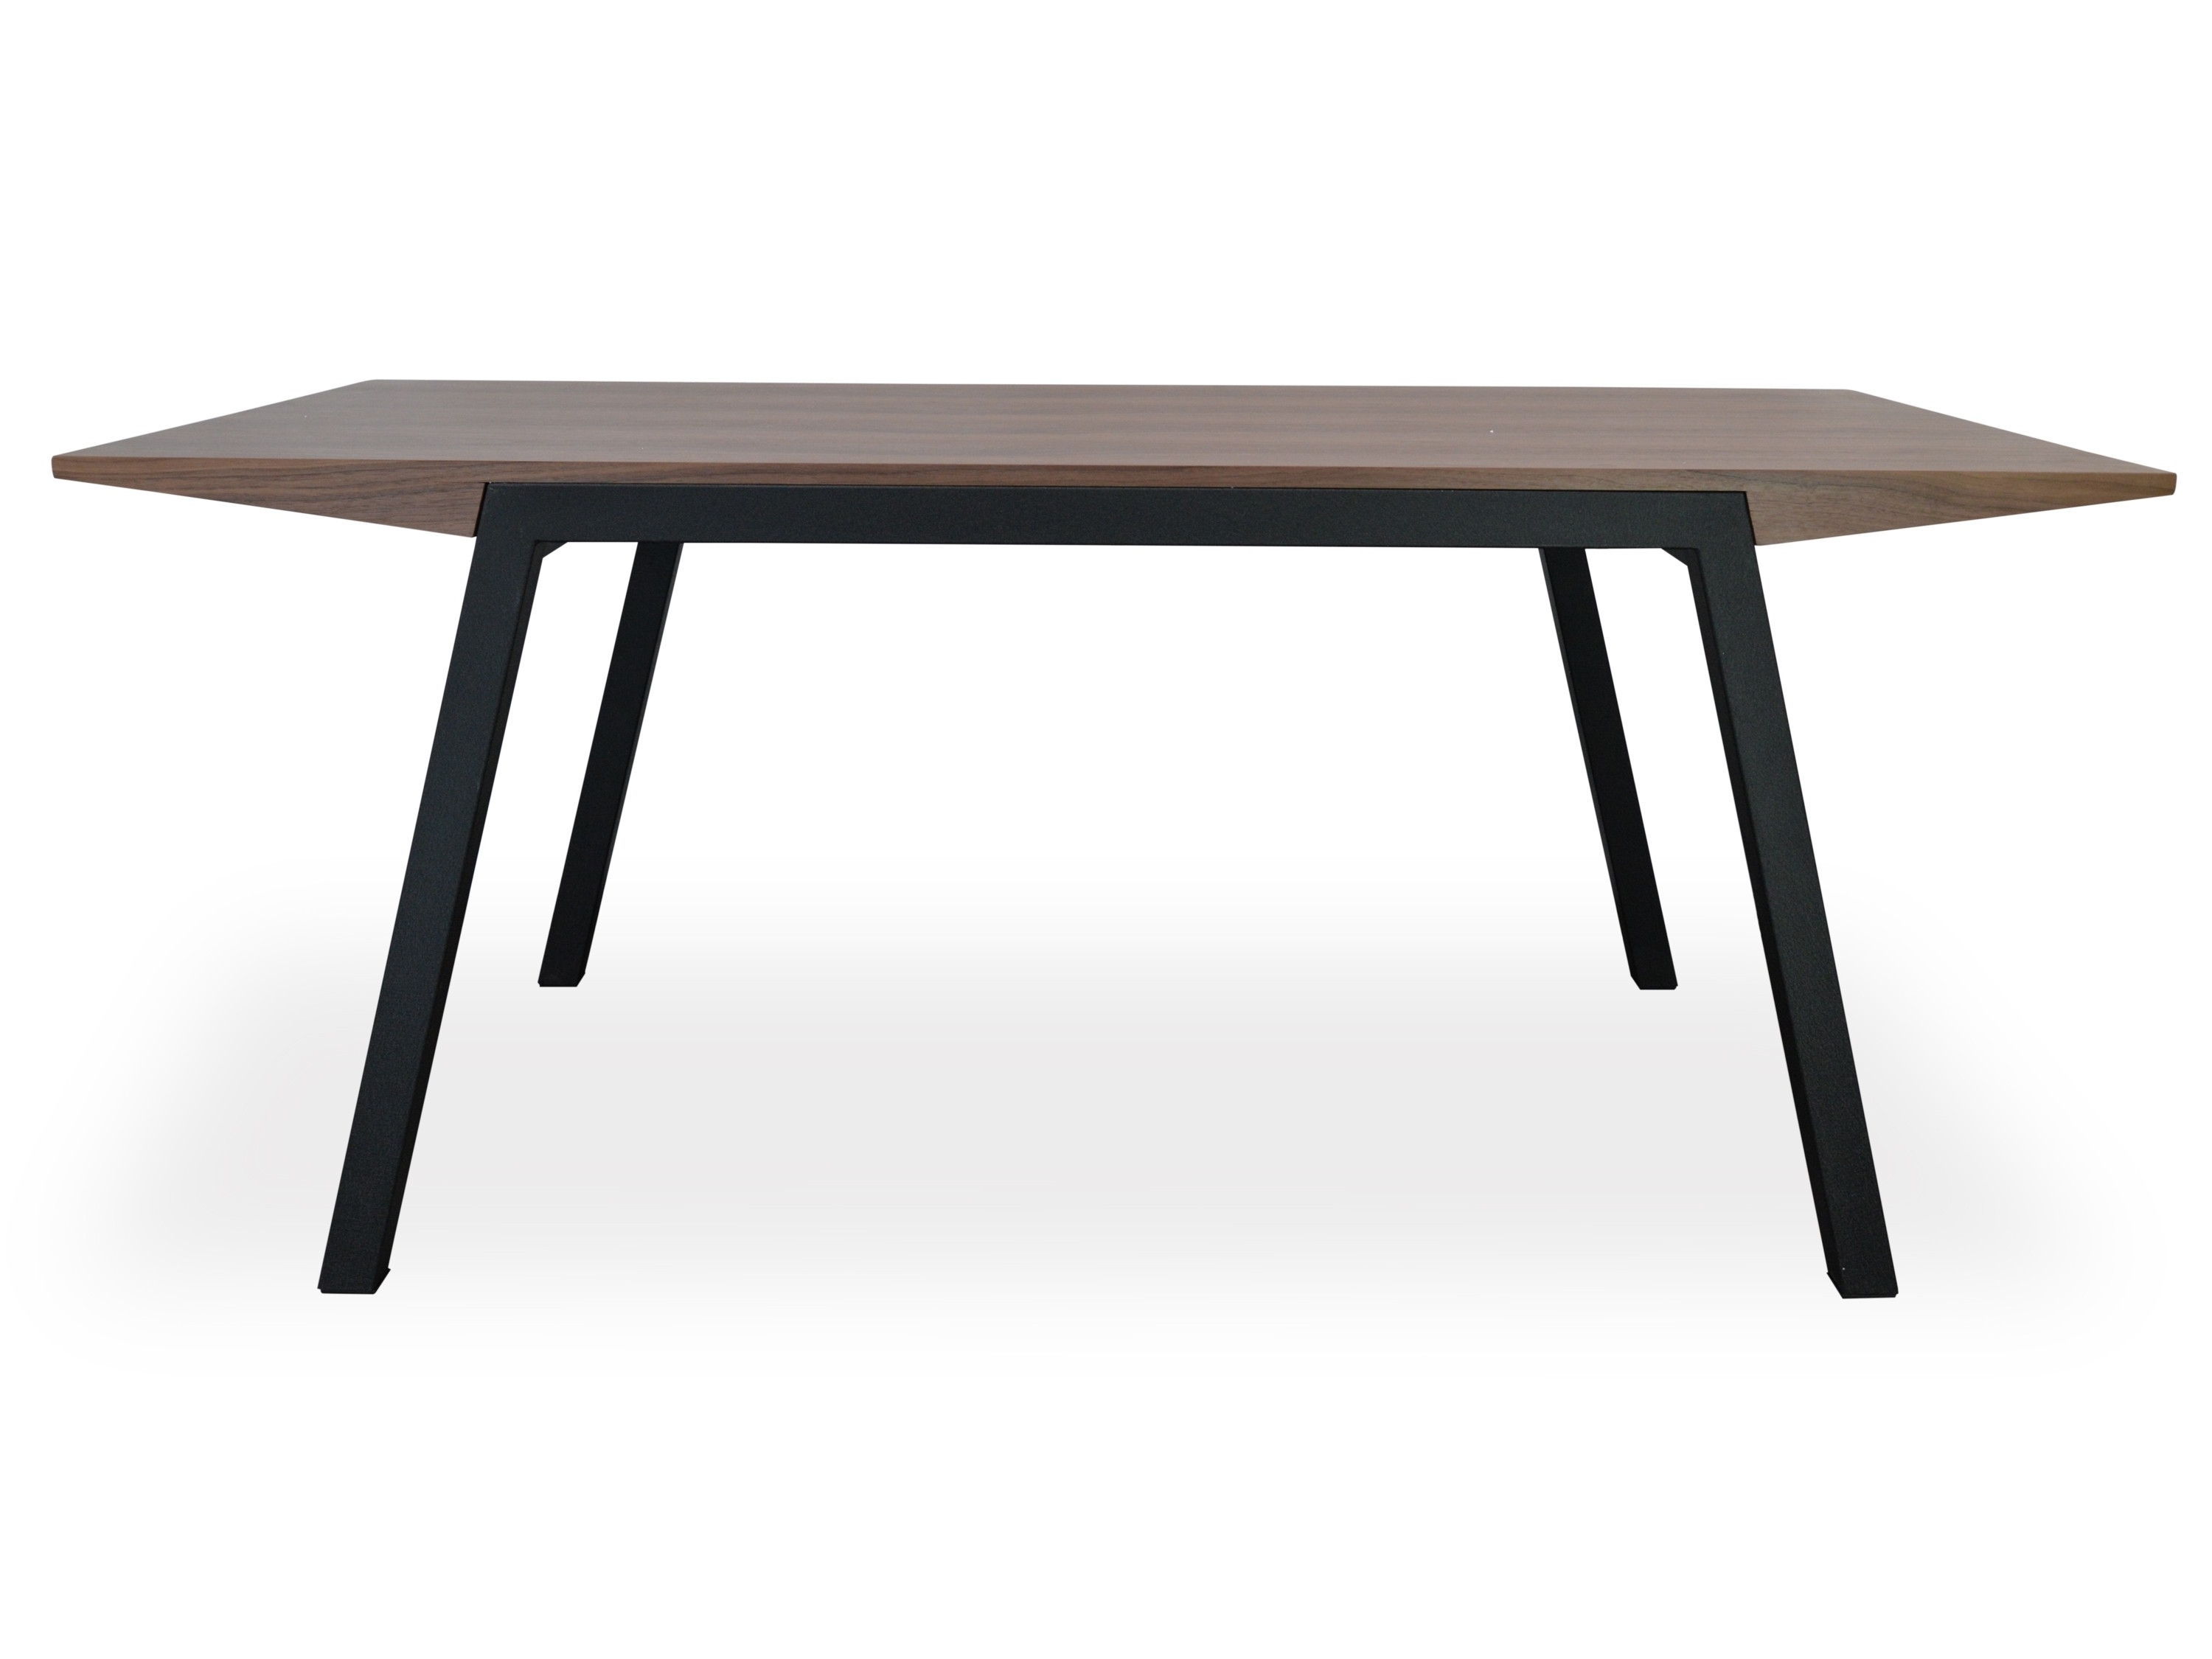 Preferred Jaxon Grey Rectangle Extension Dining Tables Inside Dinex Alfa Extension Dining Table New Jaxon Extension Rectangle (View 22 of 25)